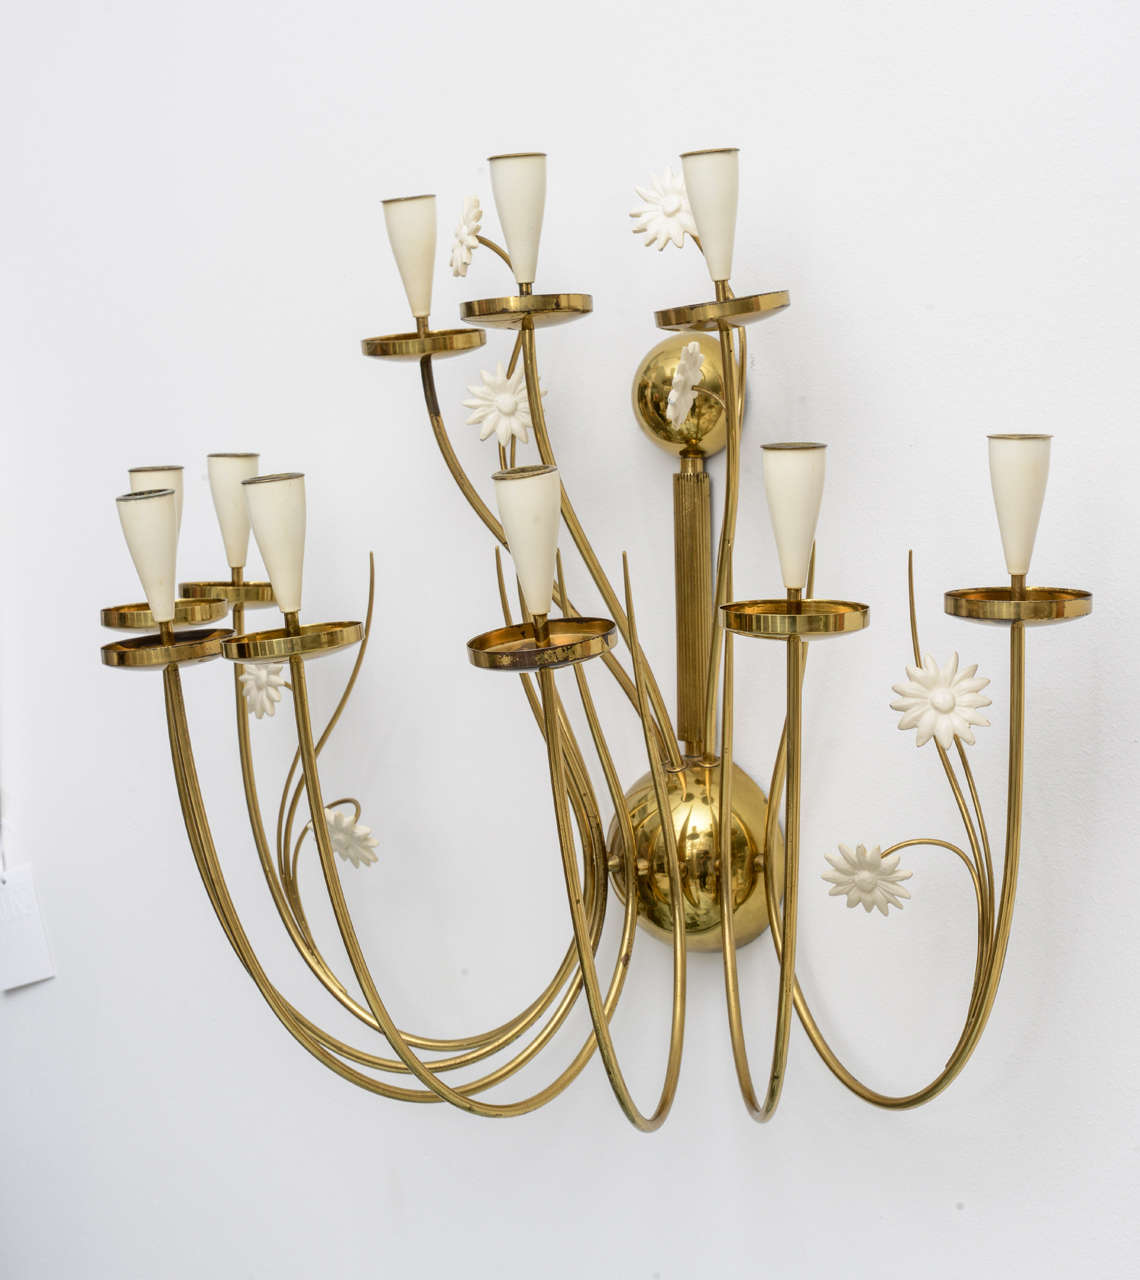 Our over-sized 50's Italian candle sconce delights the eye with delicately curving brass arms and whimsical white painted flowers... and did we mention its impressive scale? So charming with all 10 candles lit over a small sideboard or soaking tub!